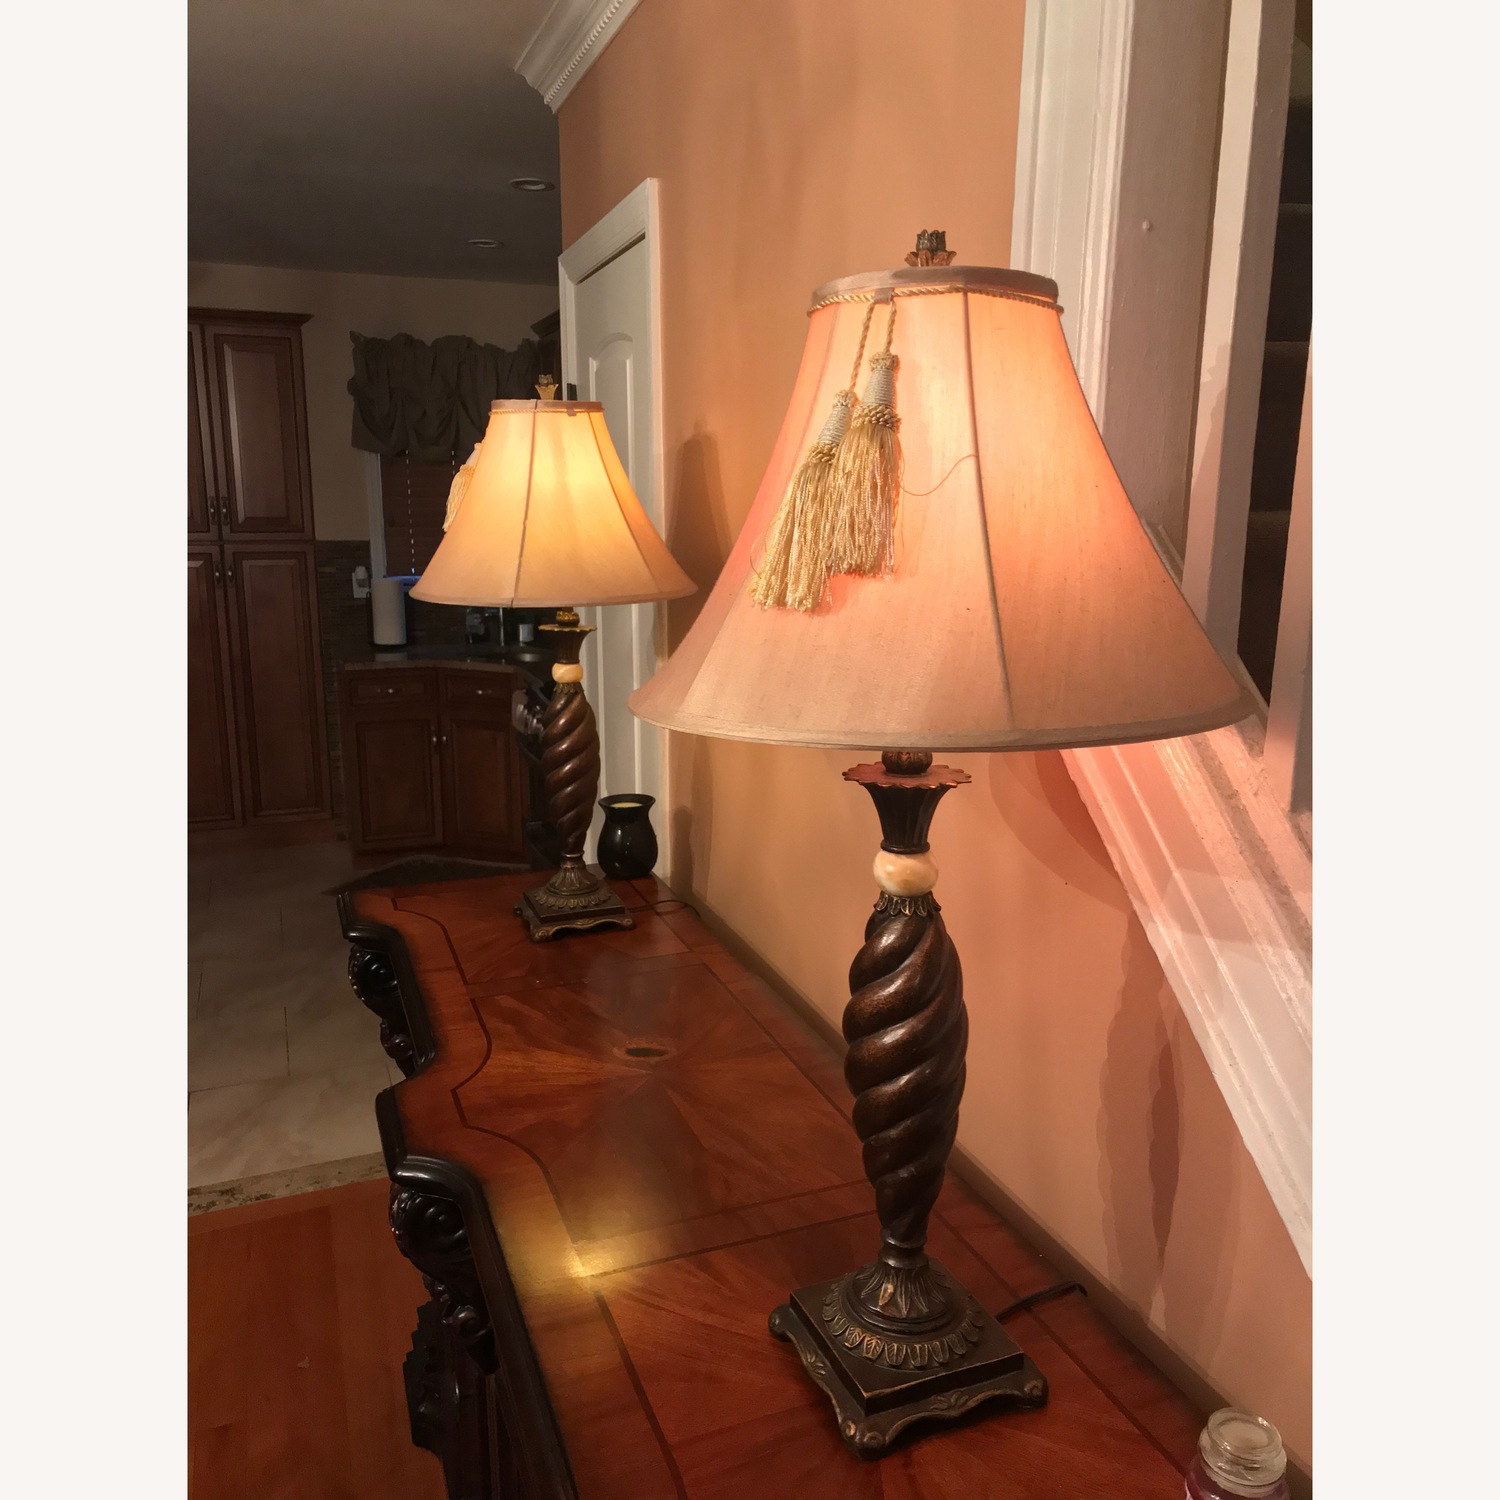 Raymour & Flanigan Table Lamps - image-1